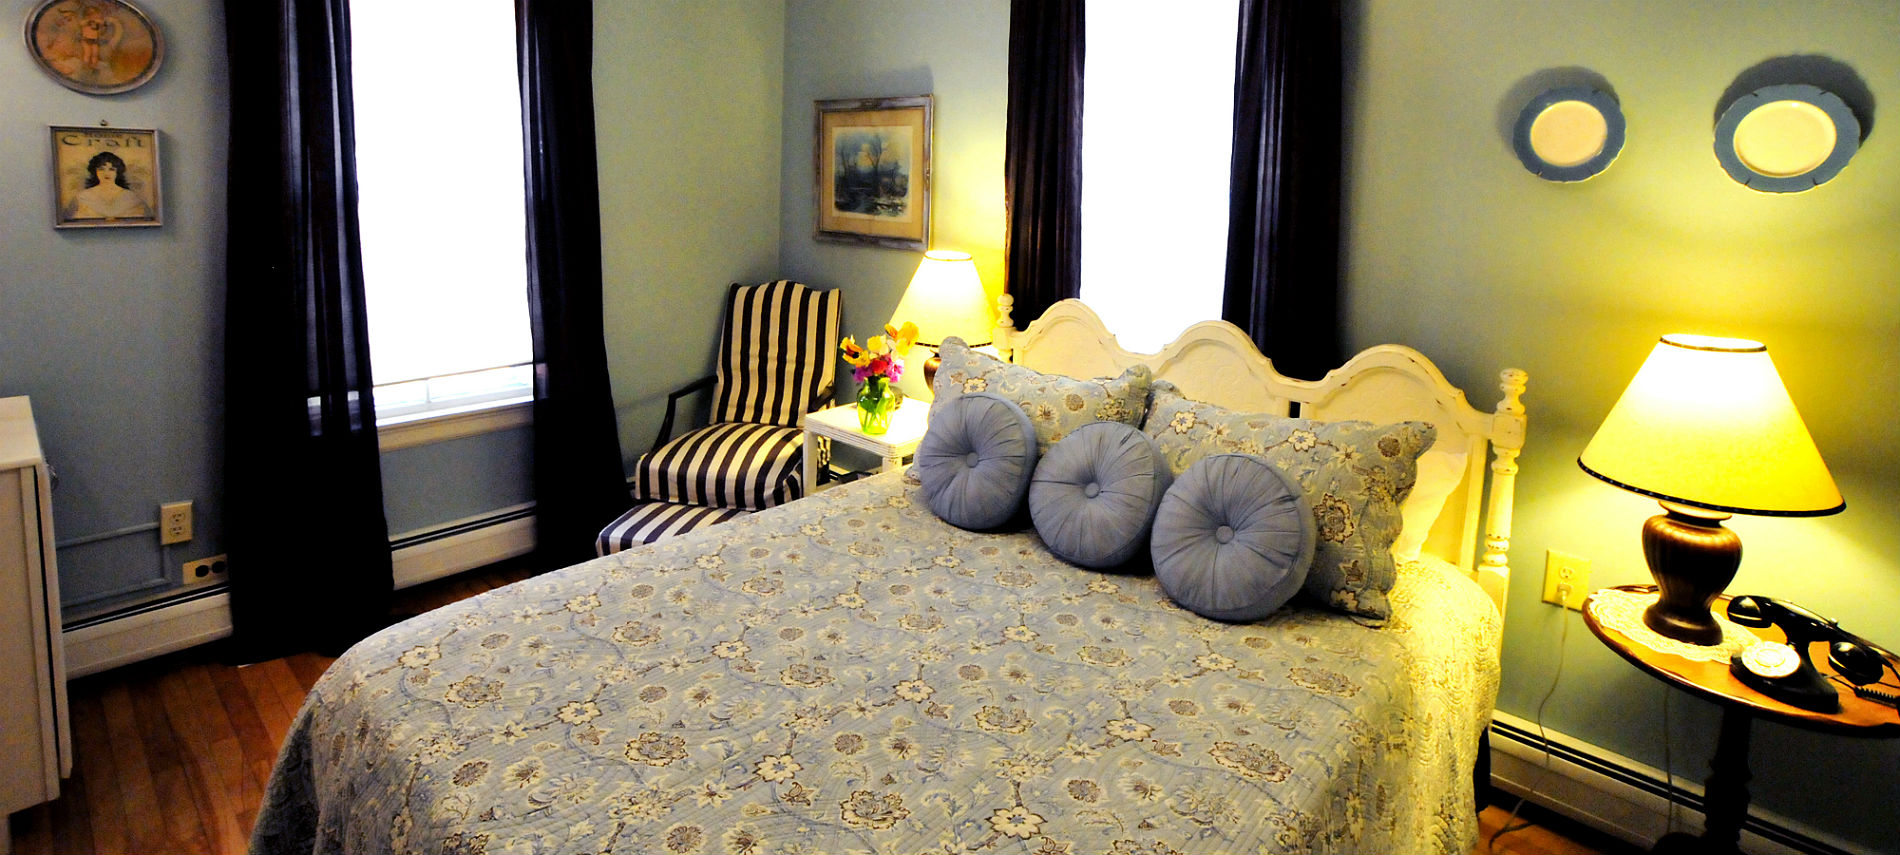 Cozy guestroom with a bed covered in a flower-print comforter and sidetables with lamps.